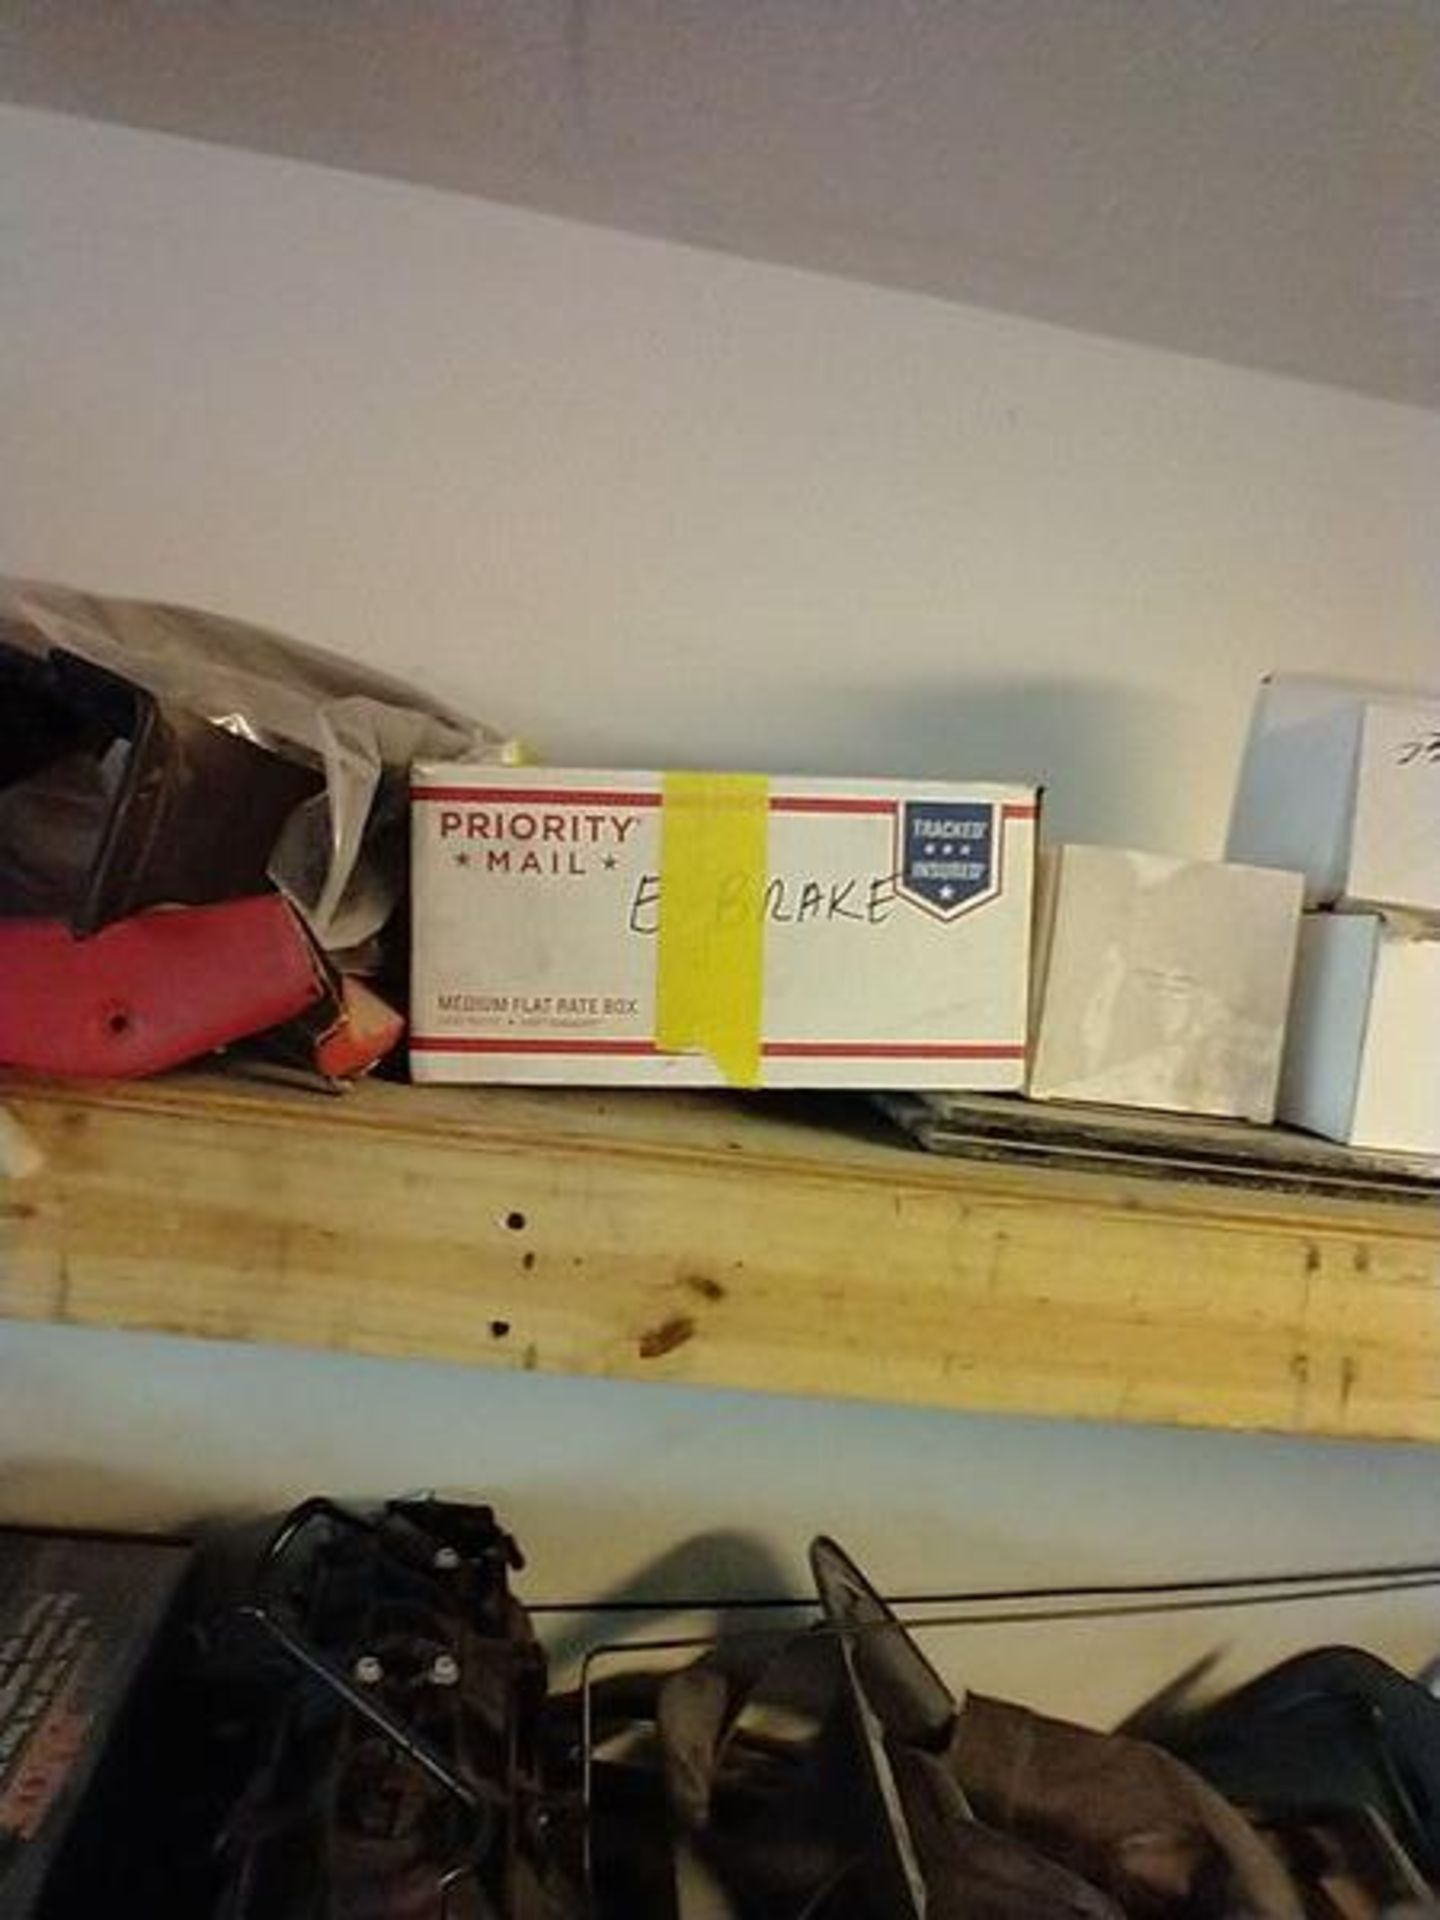 LOT OF ASSORTED CAR PARTS ON 2 SHELVES AND FLOOR - Image 8 of 23